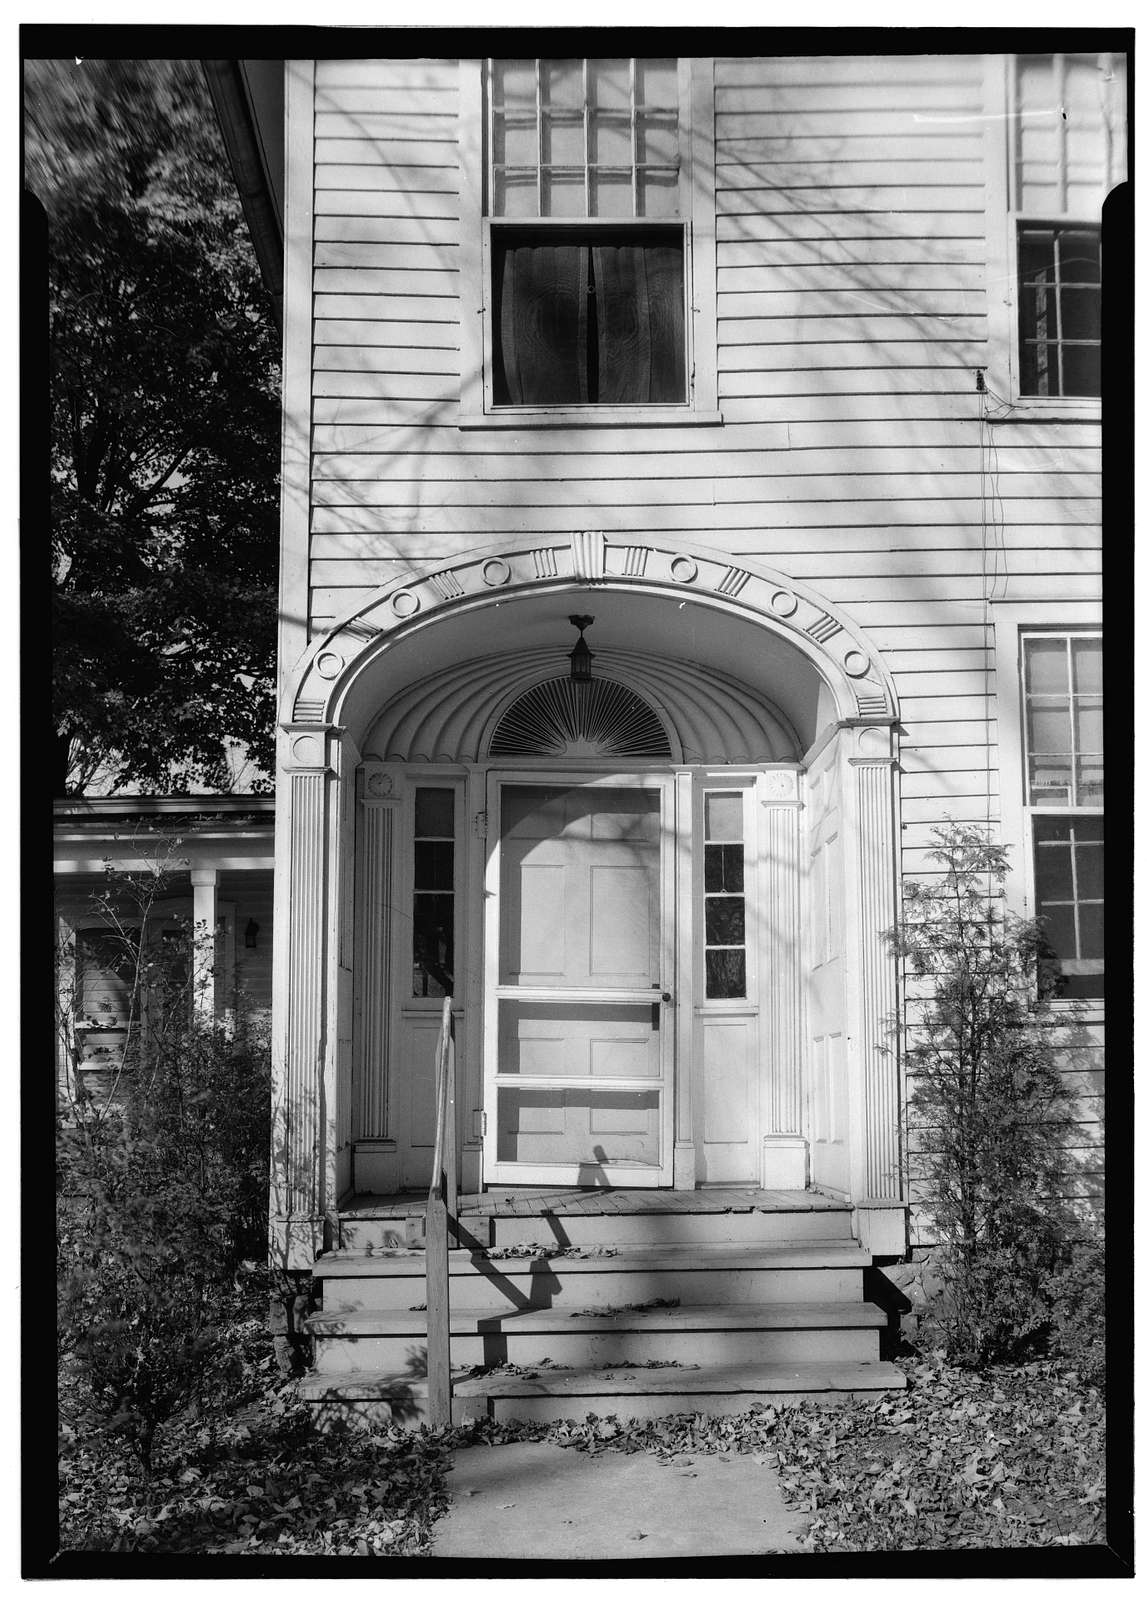 Western Reserve Academy, Bliss-Slaughter House, 79 Hudson Street, Hudson, Summit County, OH